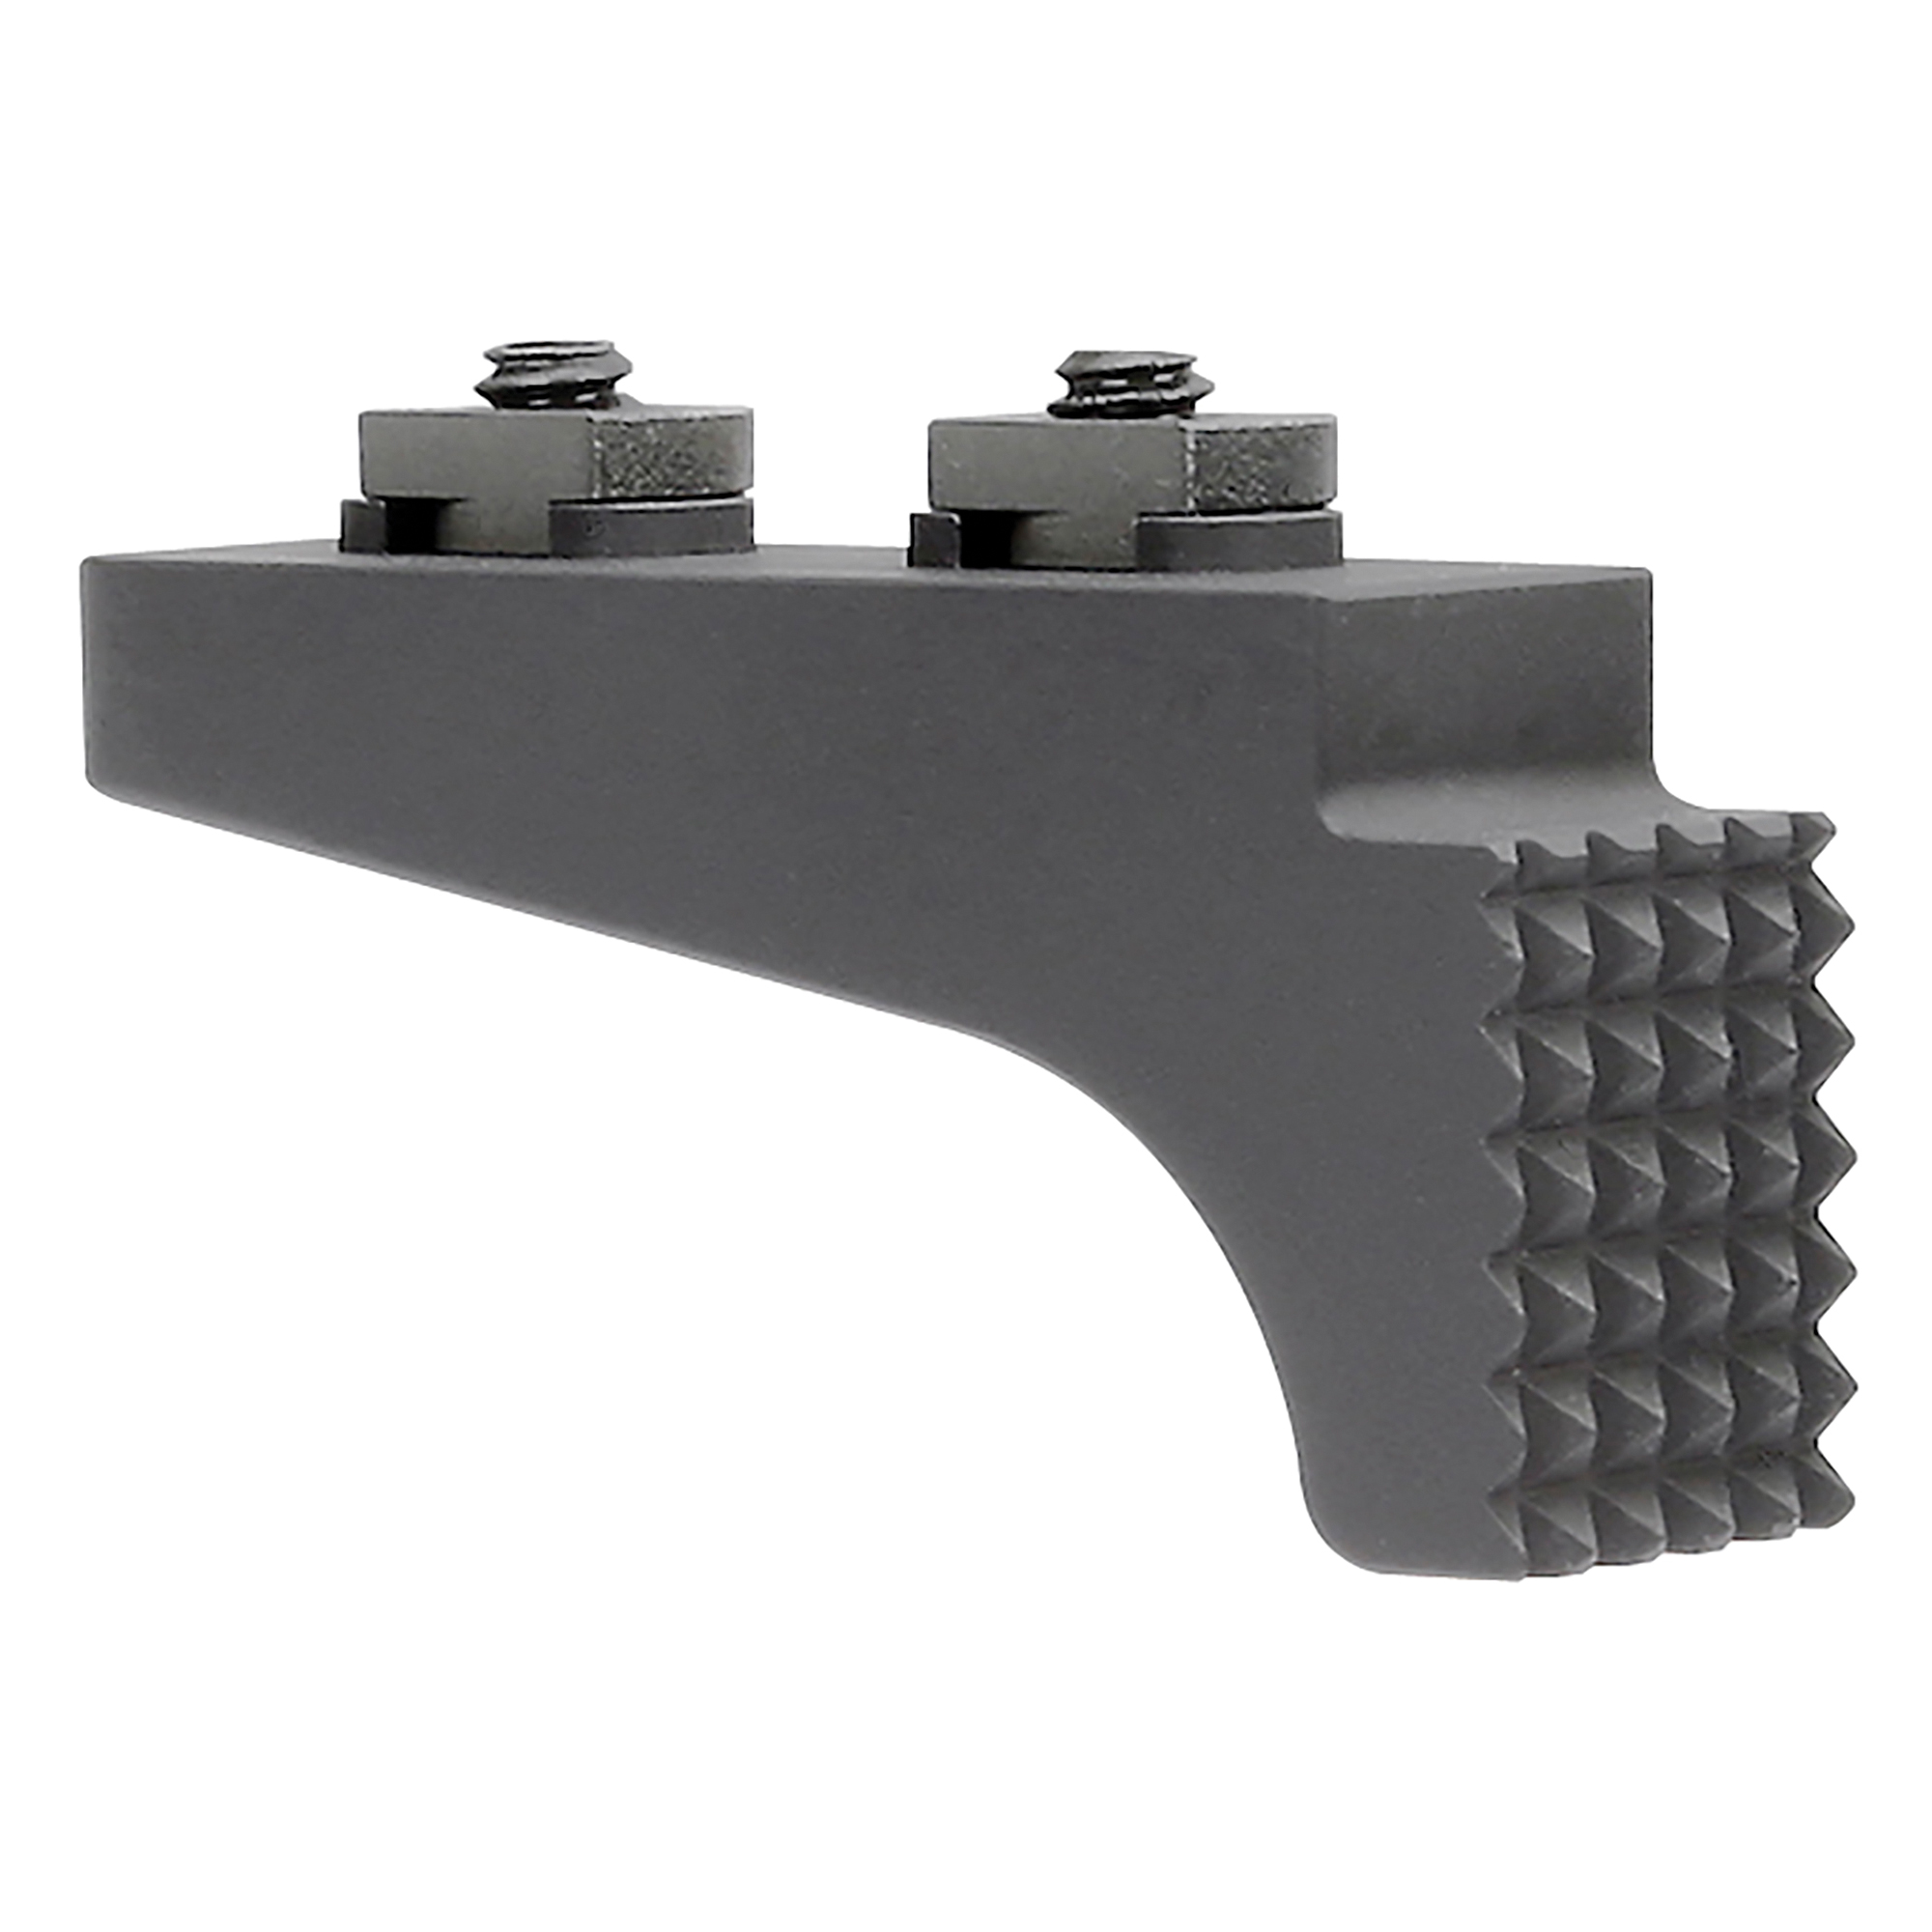 "Midwest Industries is a proven leader in the firearm industry. Made in America"" focusing on the small details to make your rifle platform better. The addition of their M-Lok Barricade Stop will give you the added function of a handstop and barricade stop. It mounts to M-LOK system slots and features teeth that allow user to achieve a solid anchor point tor precise shots."